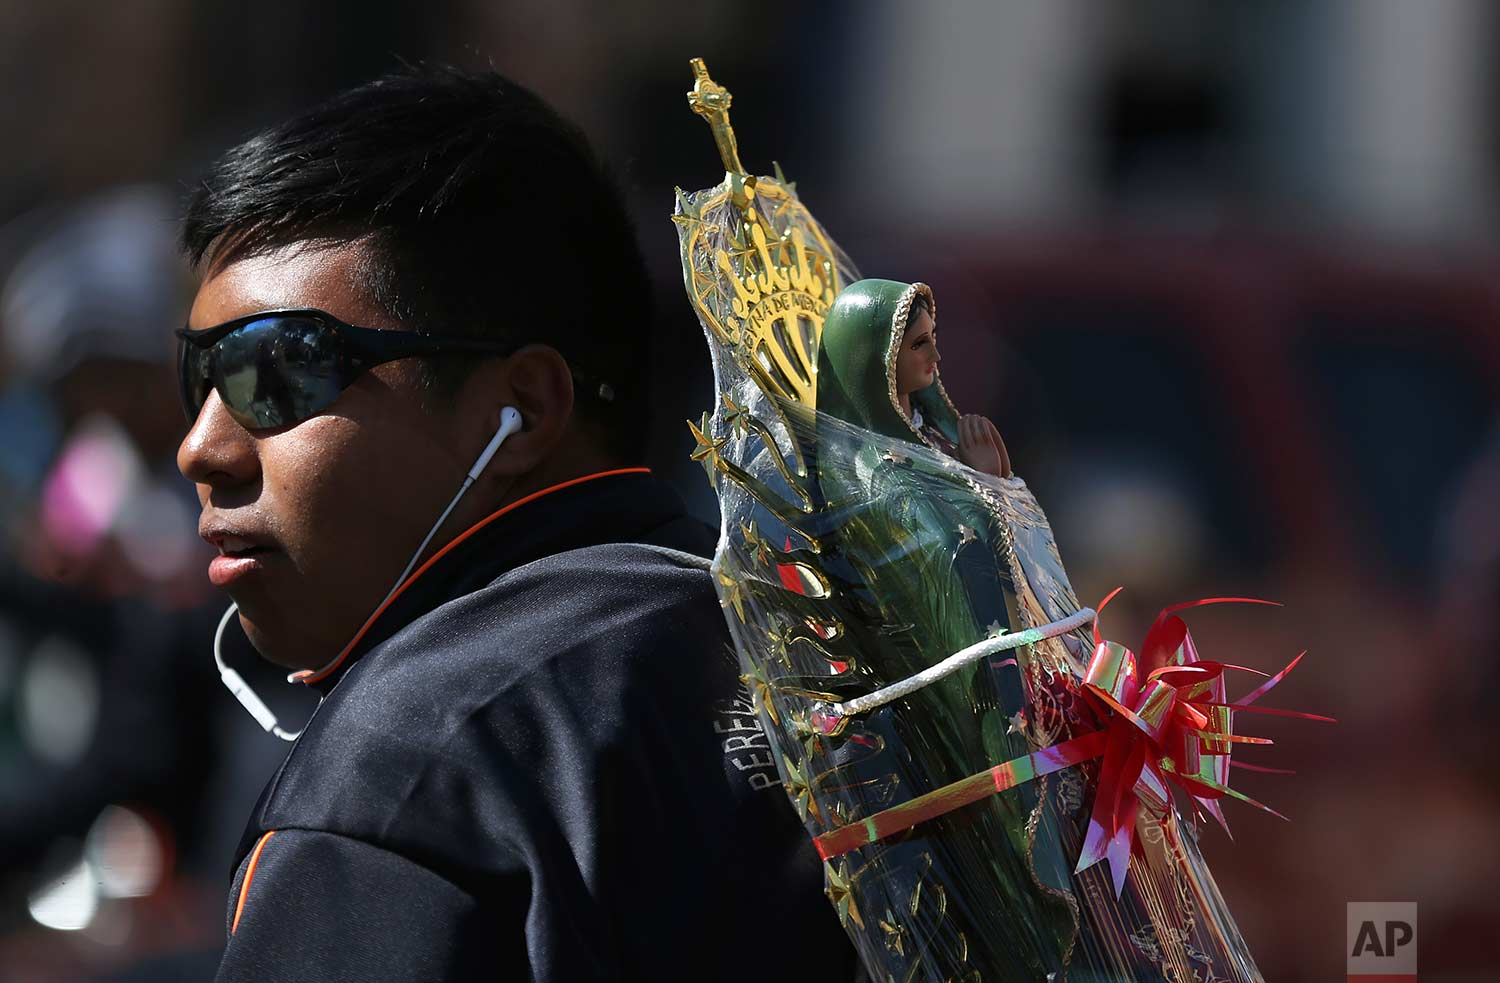 A pilgrim carries on his back a statue of Our Lady of Guadalupe toward the Basilica of the Virgin of Guadalupe in Mexico City, Monday, Dec. 11, 2017. (AP Photo/Marco Ugarte)